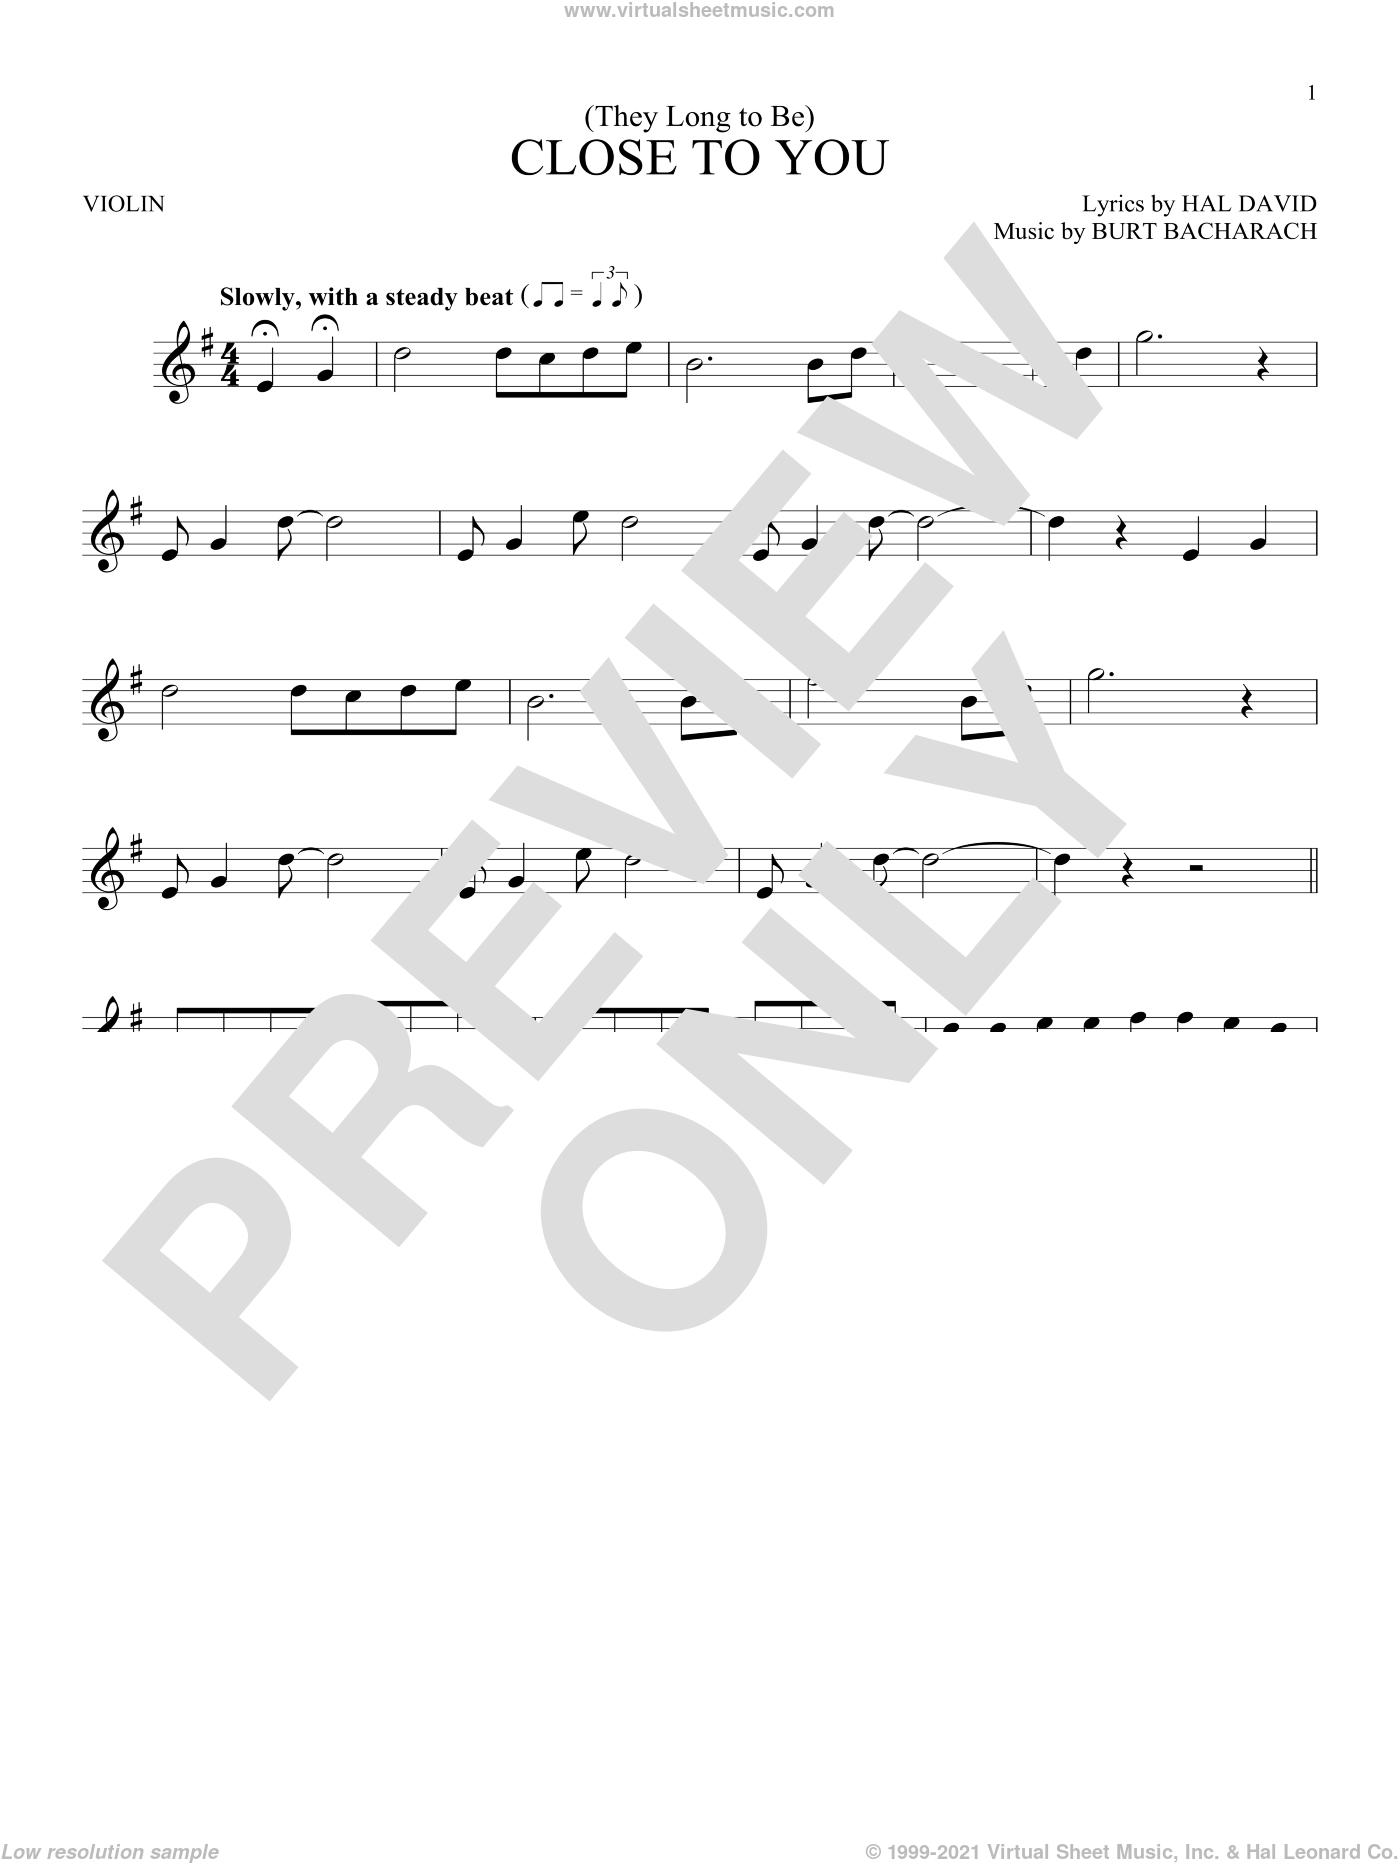 (They Long To Be) Close To You sheet music for violin solo by Burt Bacharach, Carpenters and Hal David, intermediate skill level